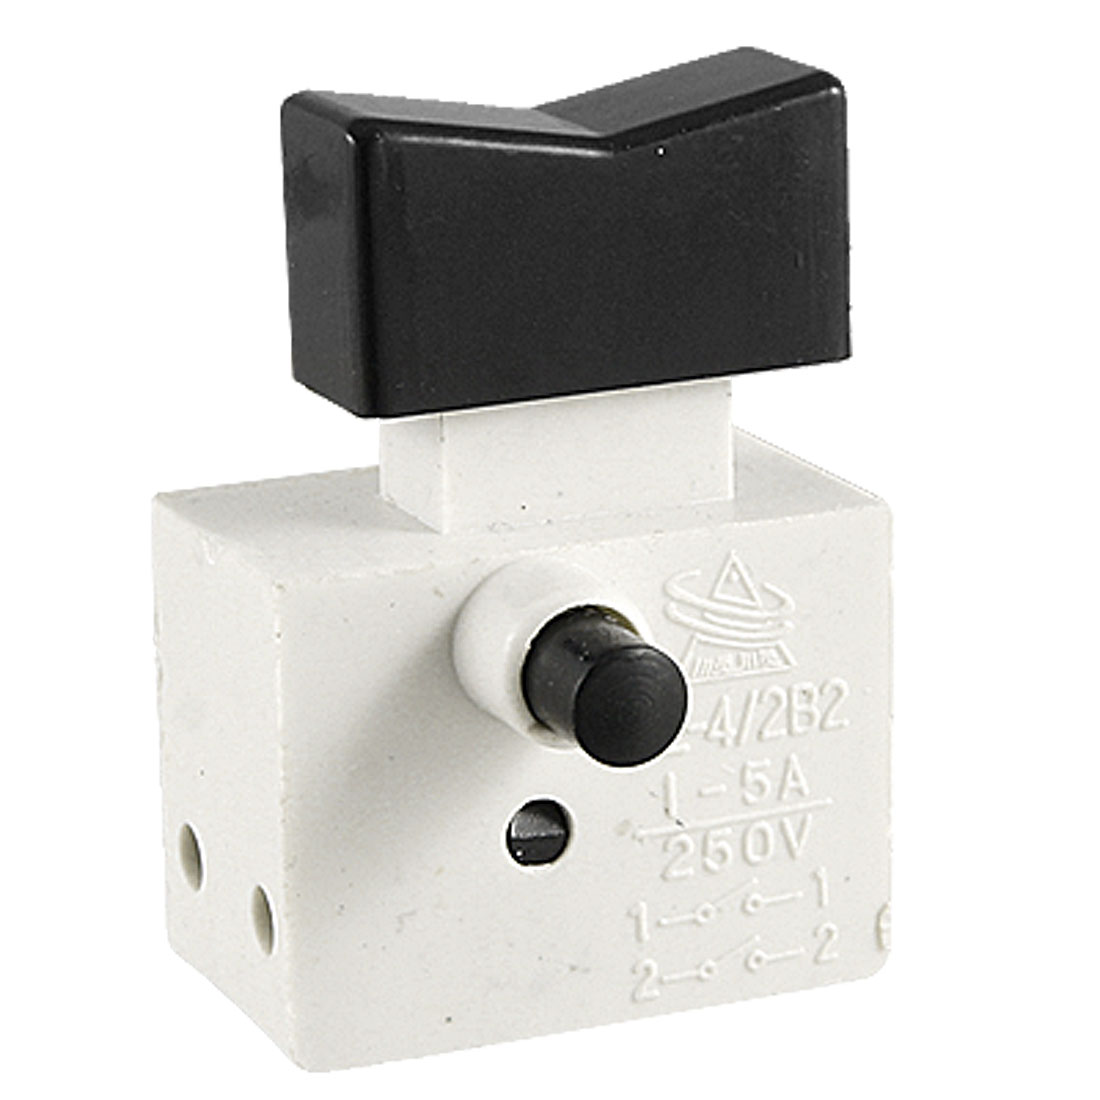 AC 250V 5A DPNO Trigger Switch for Electric Power Hand Drill Tool